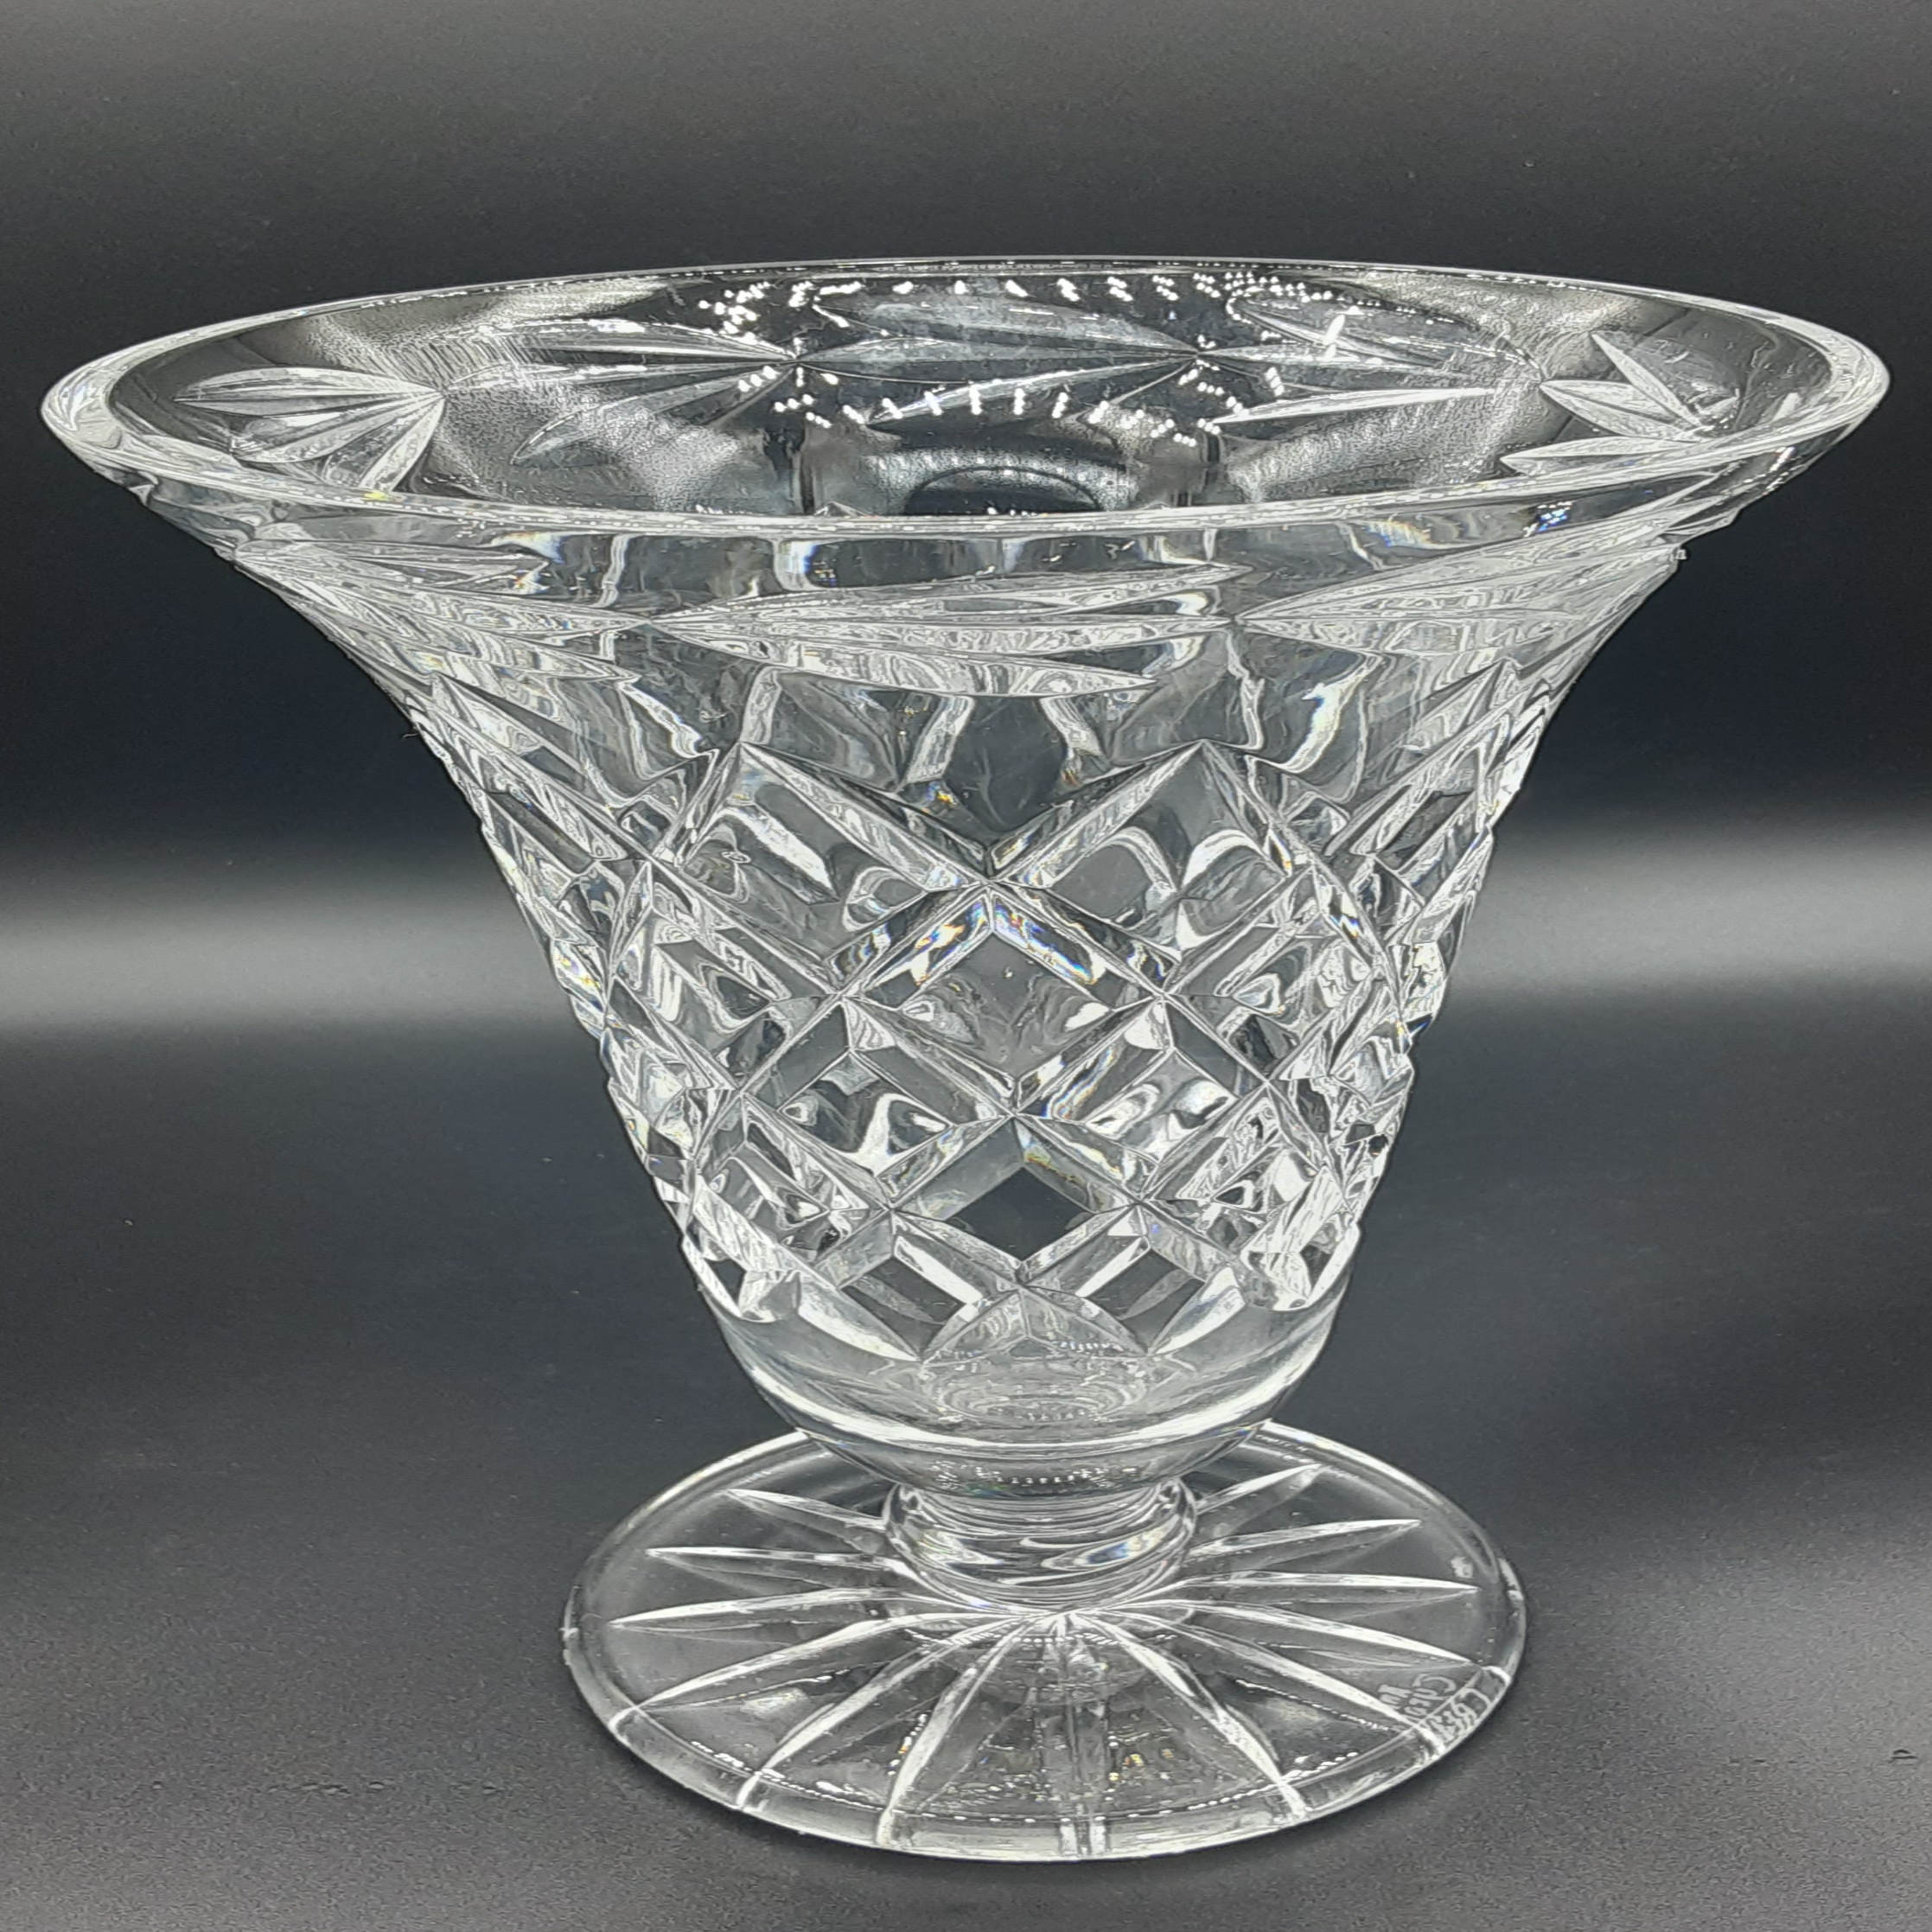 Tyrone Cut Crystal crystal flower vase - 8 inches tall